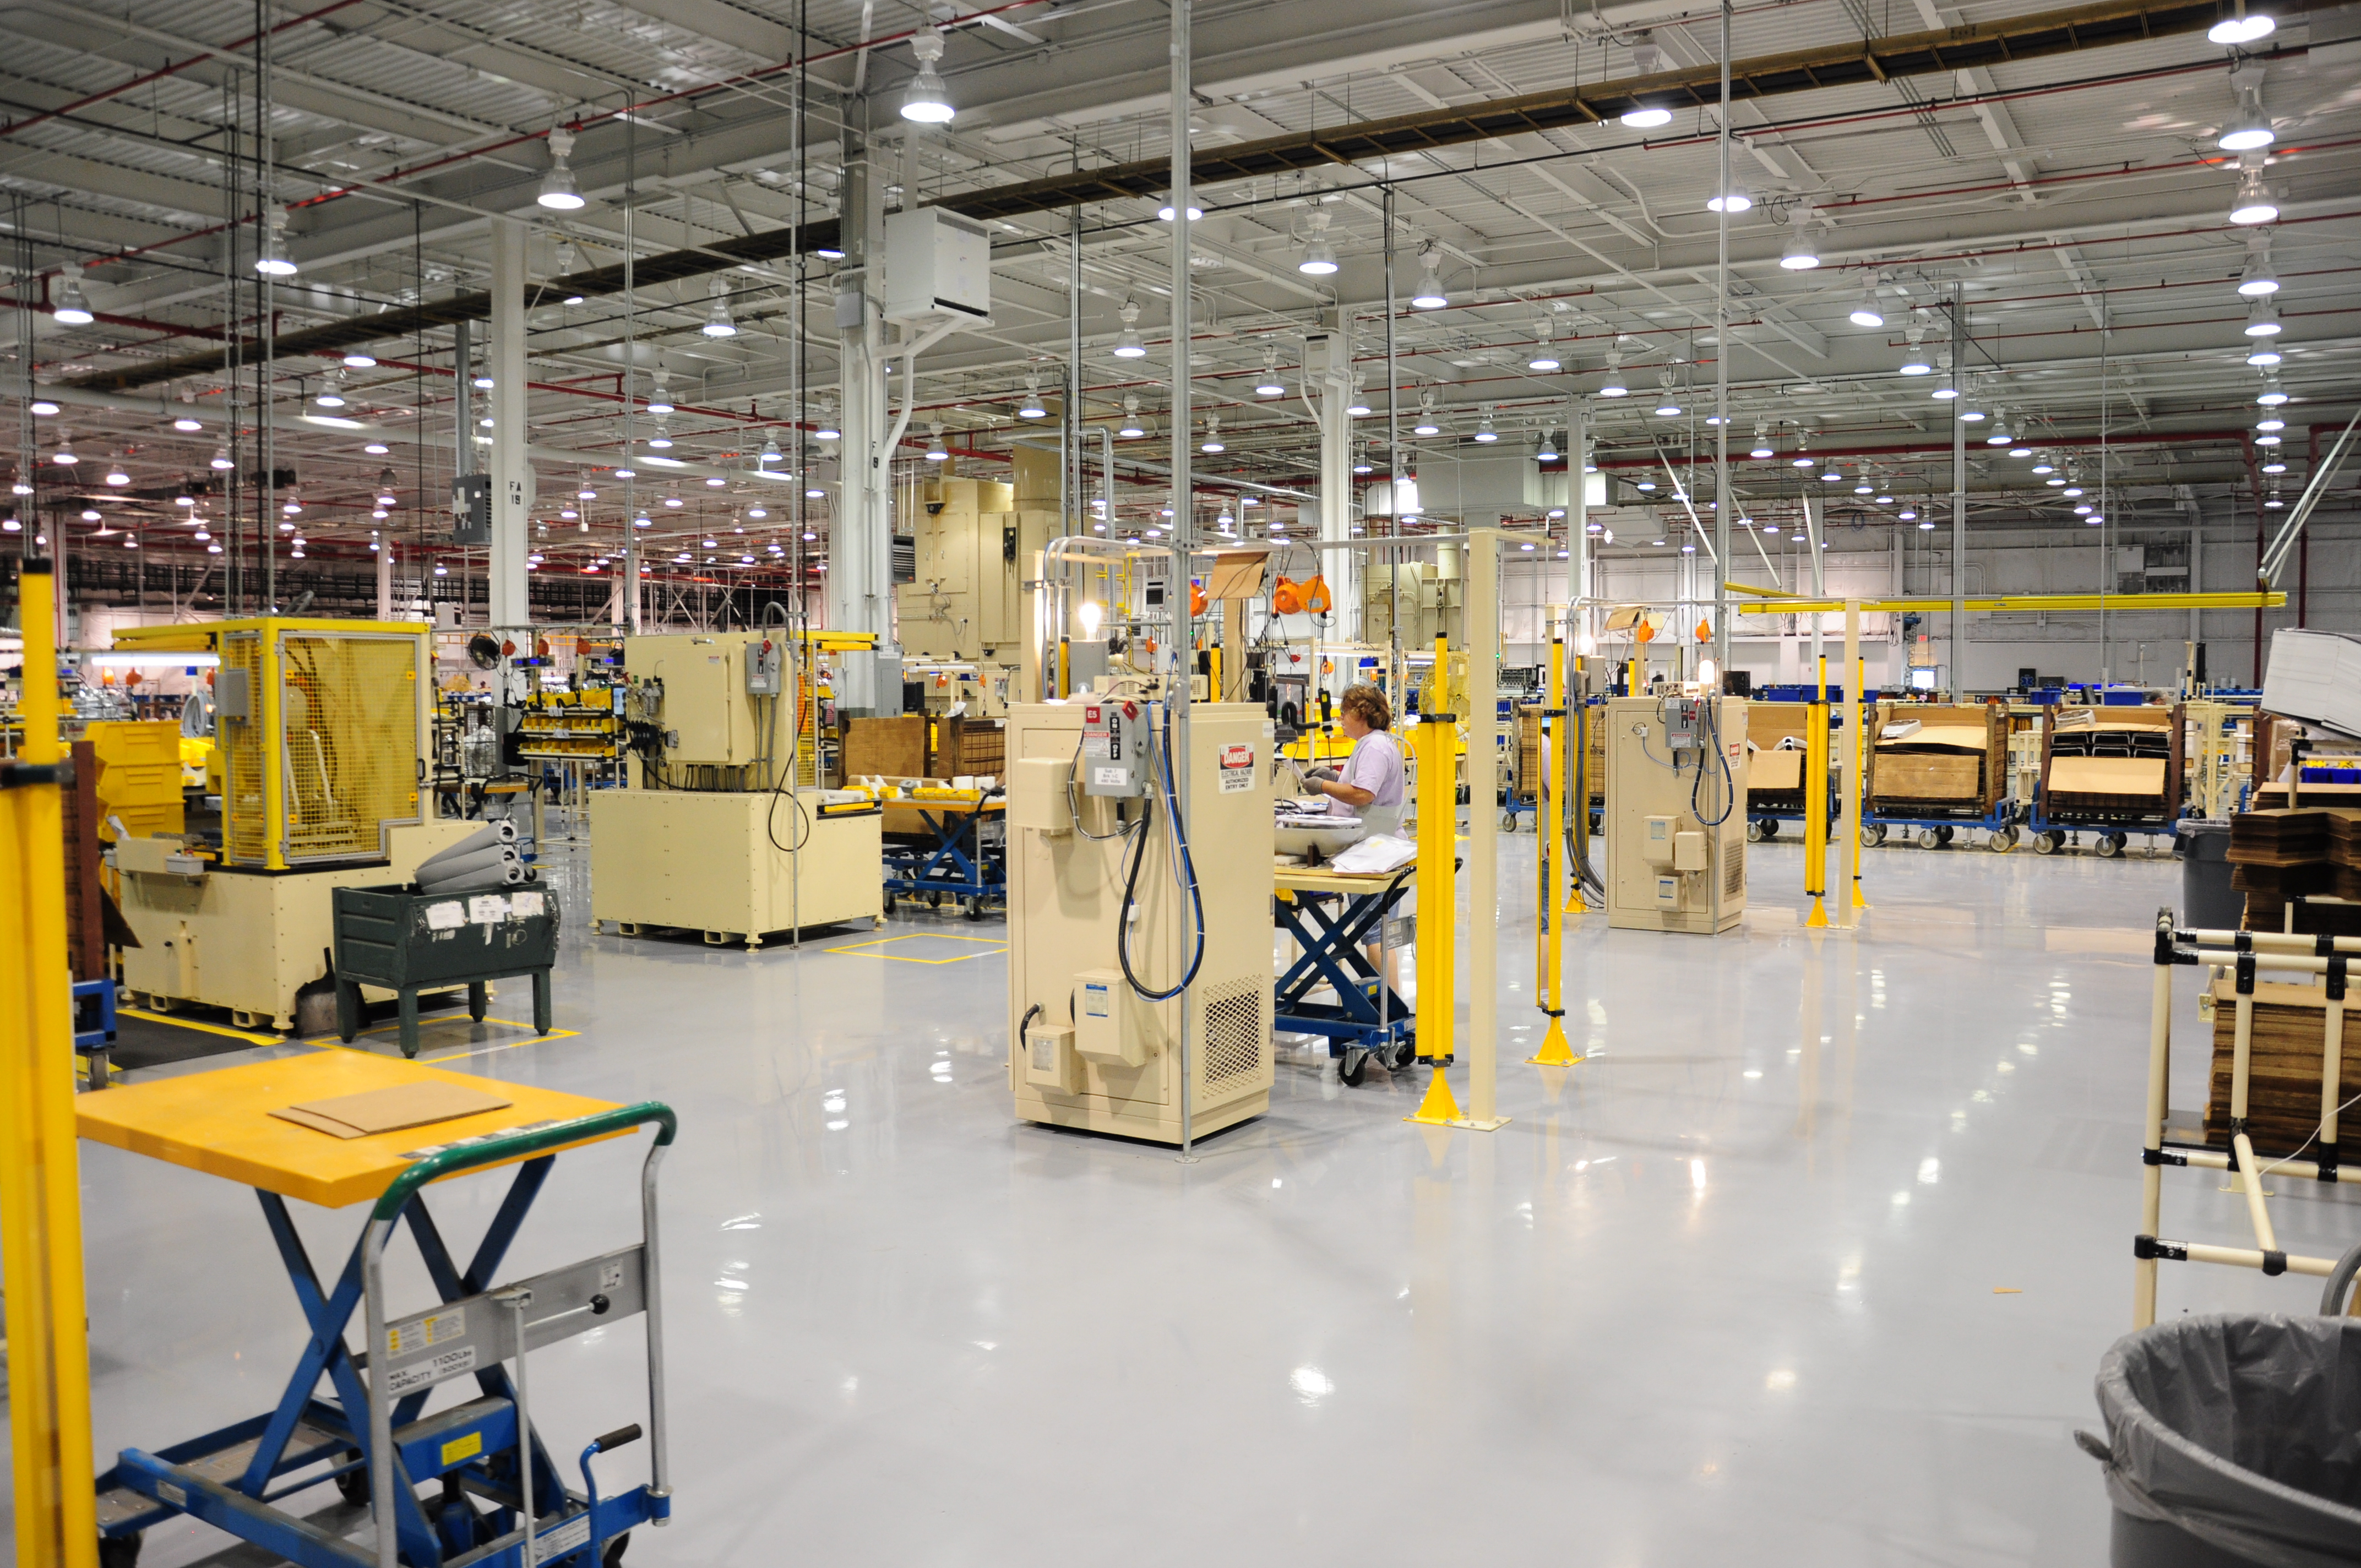 Industrial Cleaning is Our Specialty